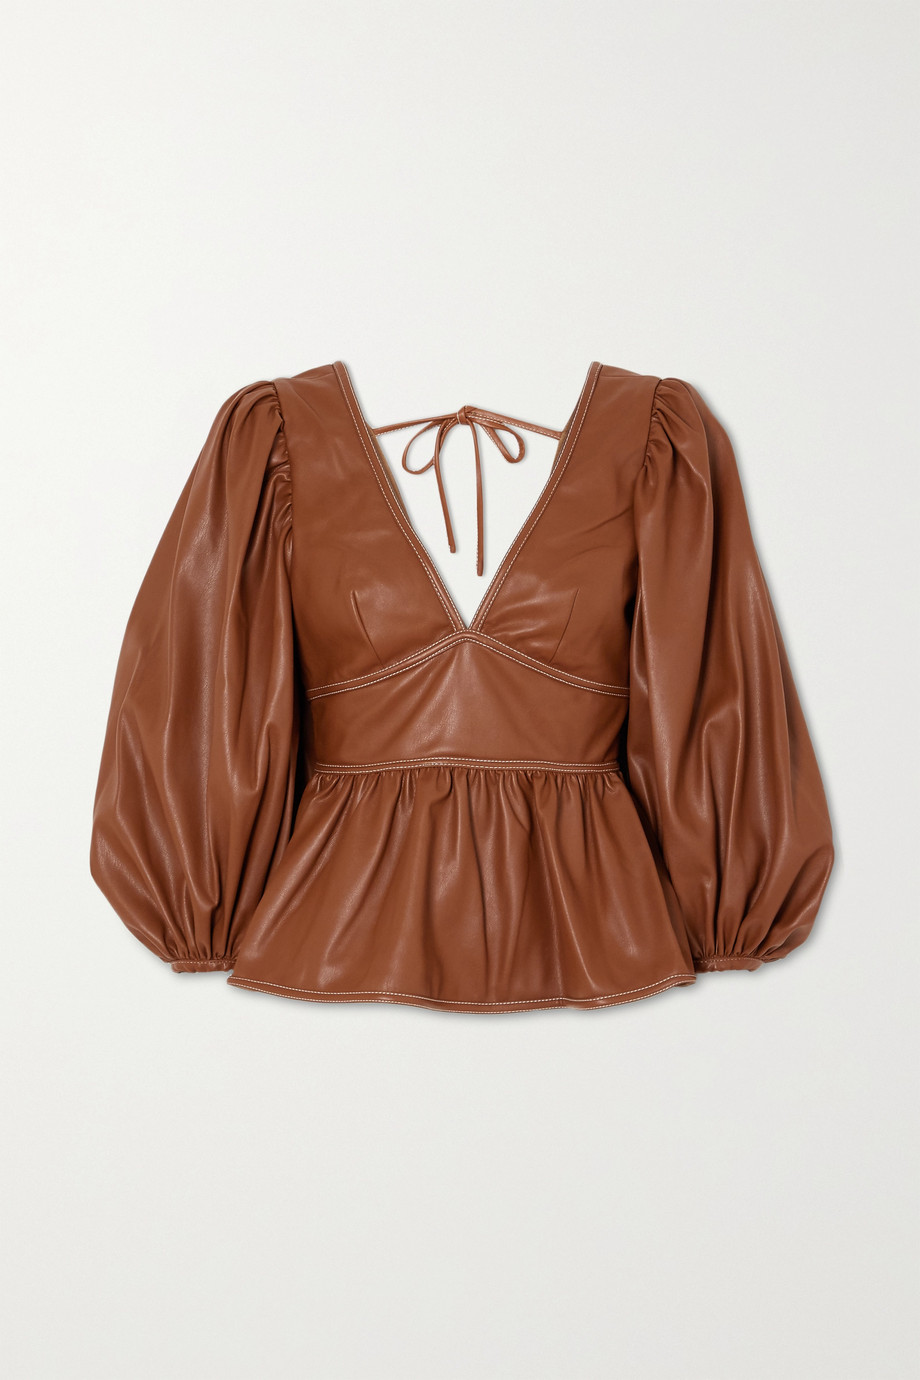 STAUD Luna topstitched faux leather peplum top